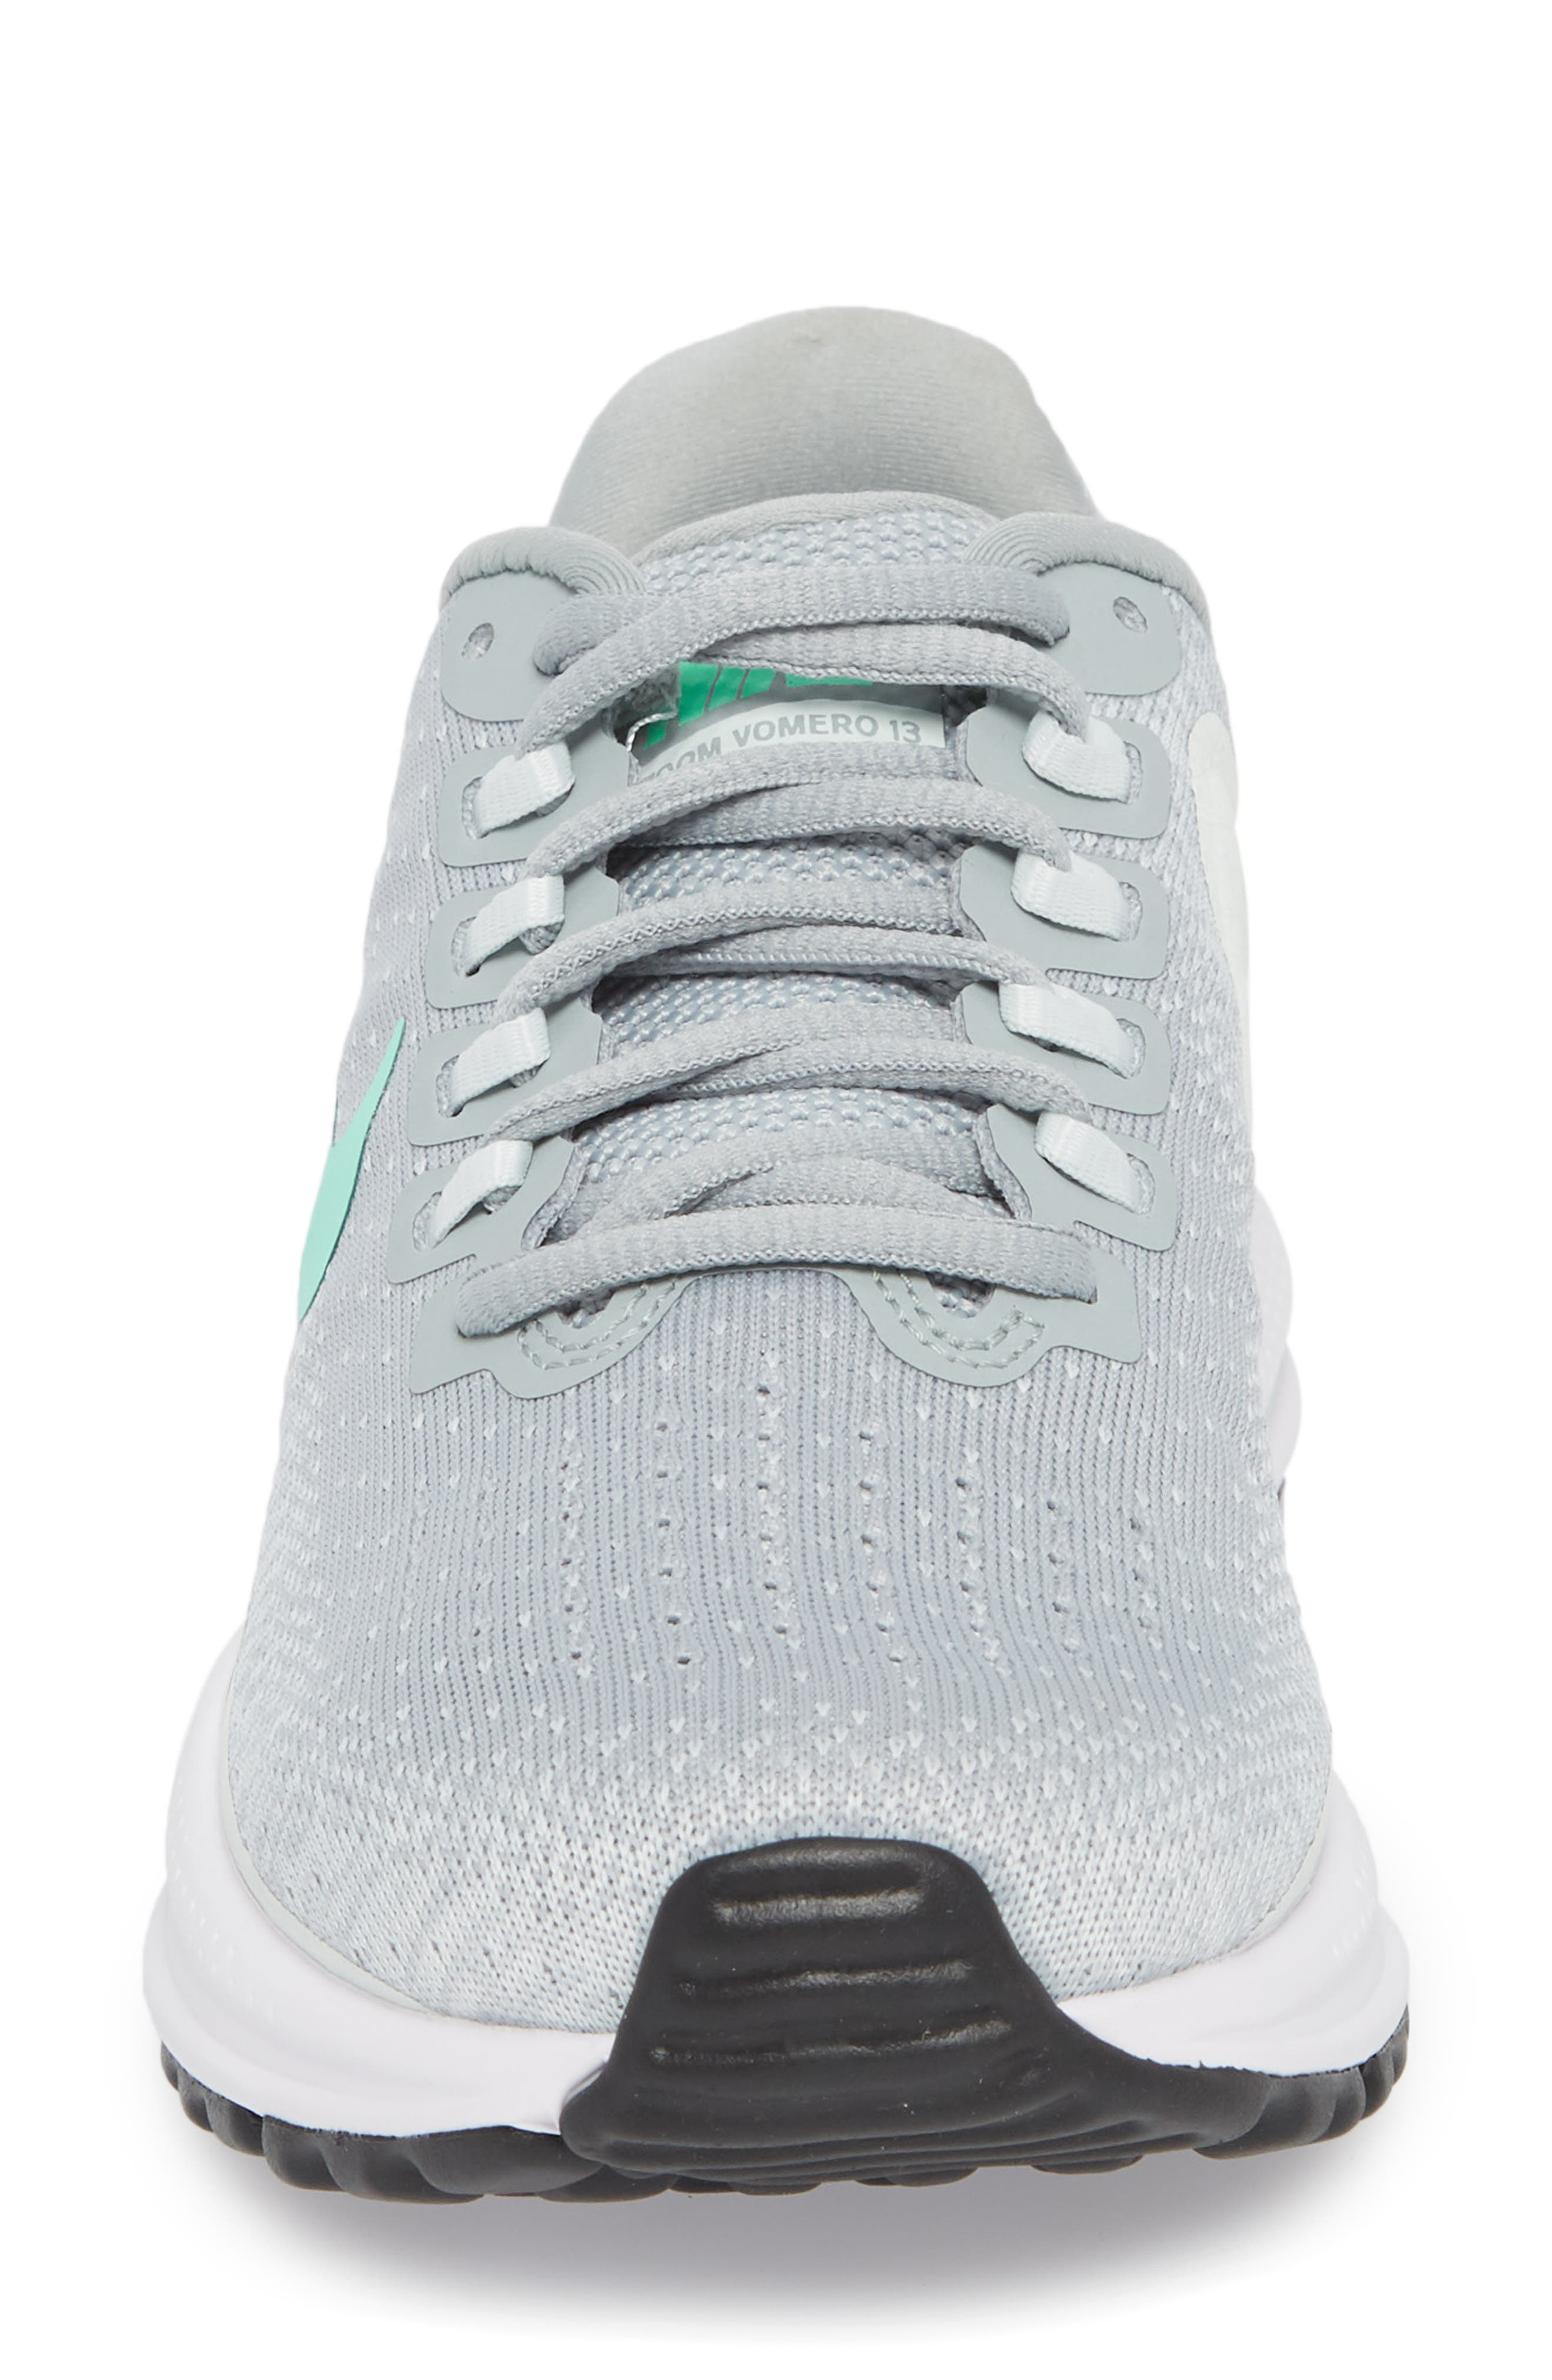 Air Zoom Vomero 13 Running Shoe,                             Alternate thumbnail 3, color,                             Light Pumice/ Green Glow